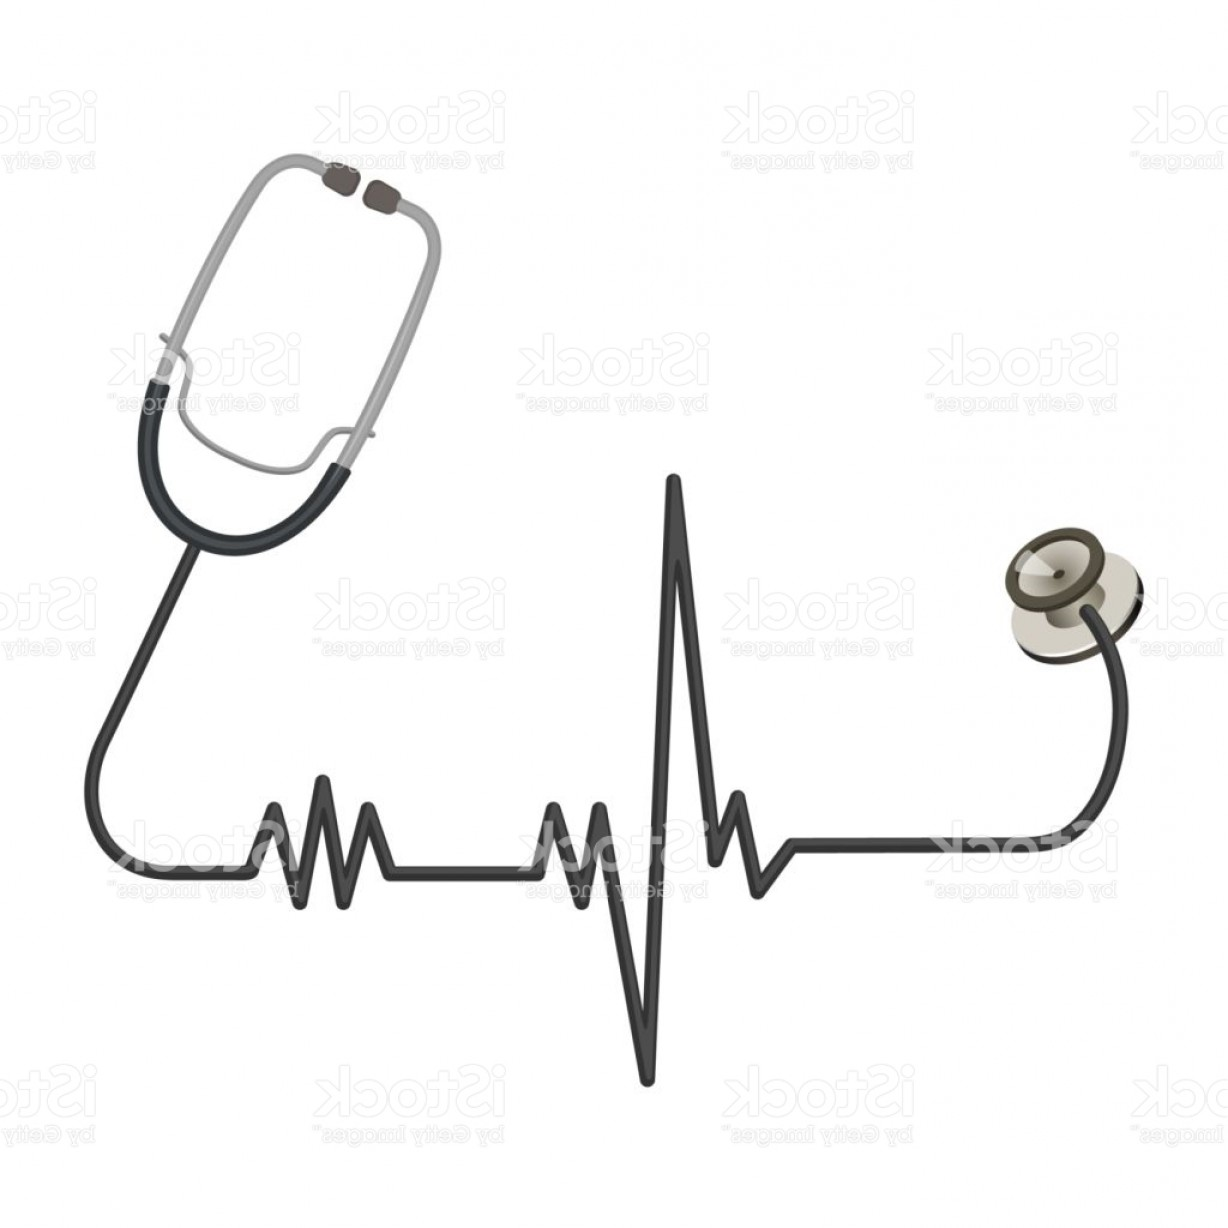 Heart Stethoscope With EKG Lines Vector: Medical Stethoscope With Long Wire In Shape Of Ekg Line Gm